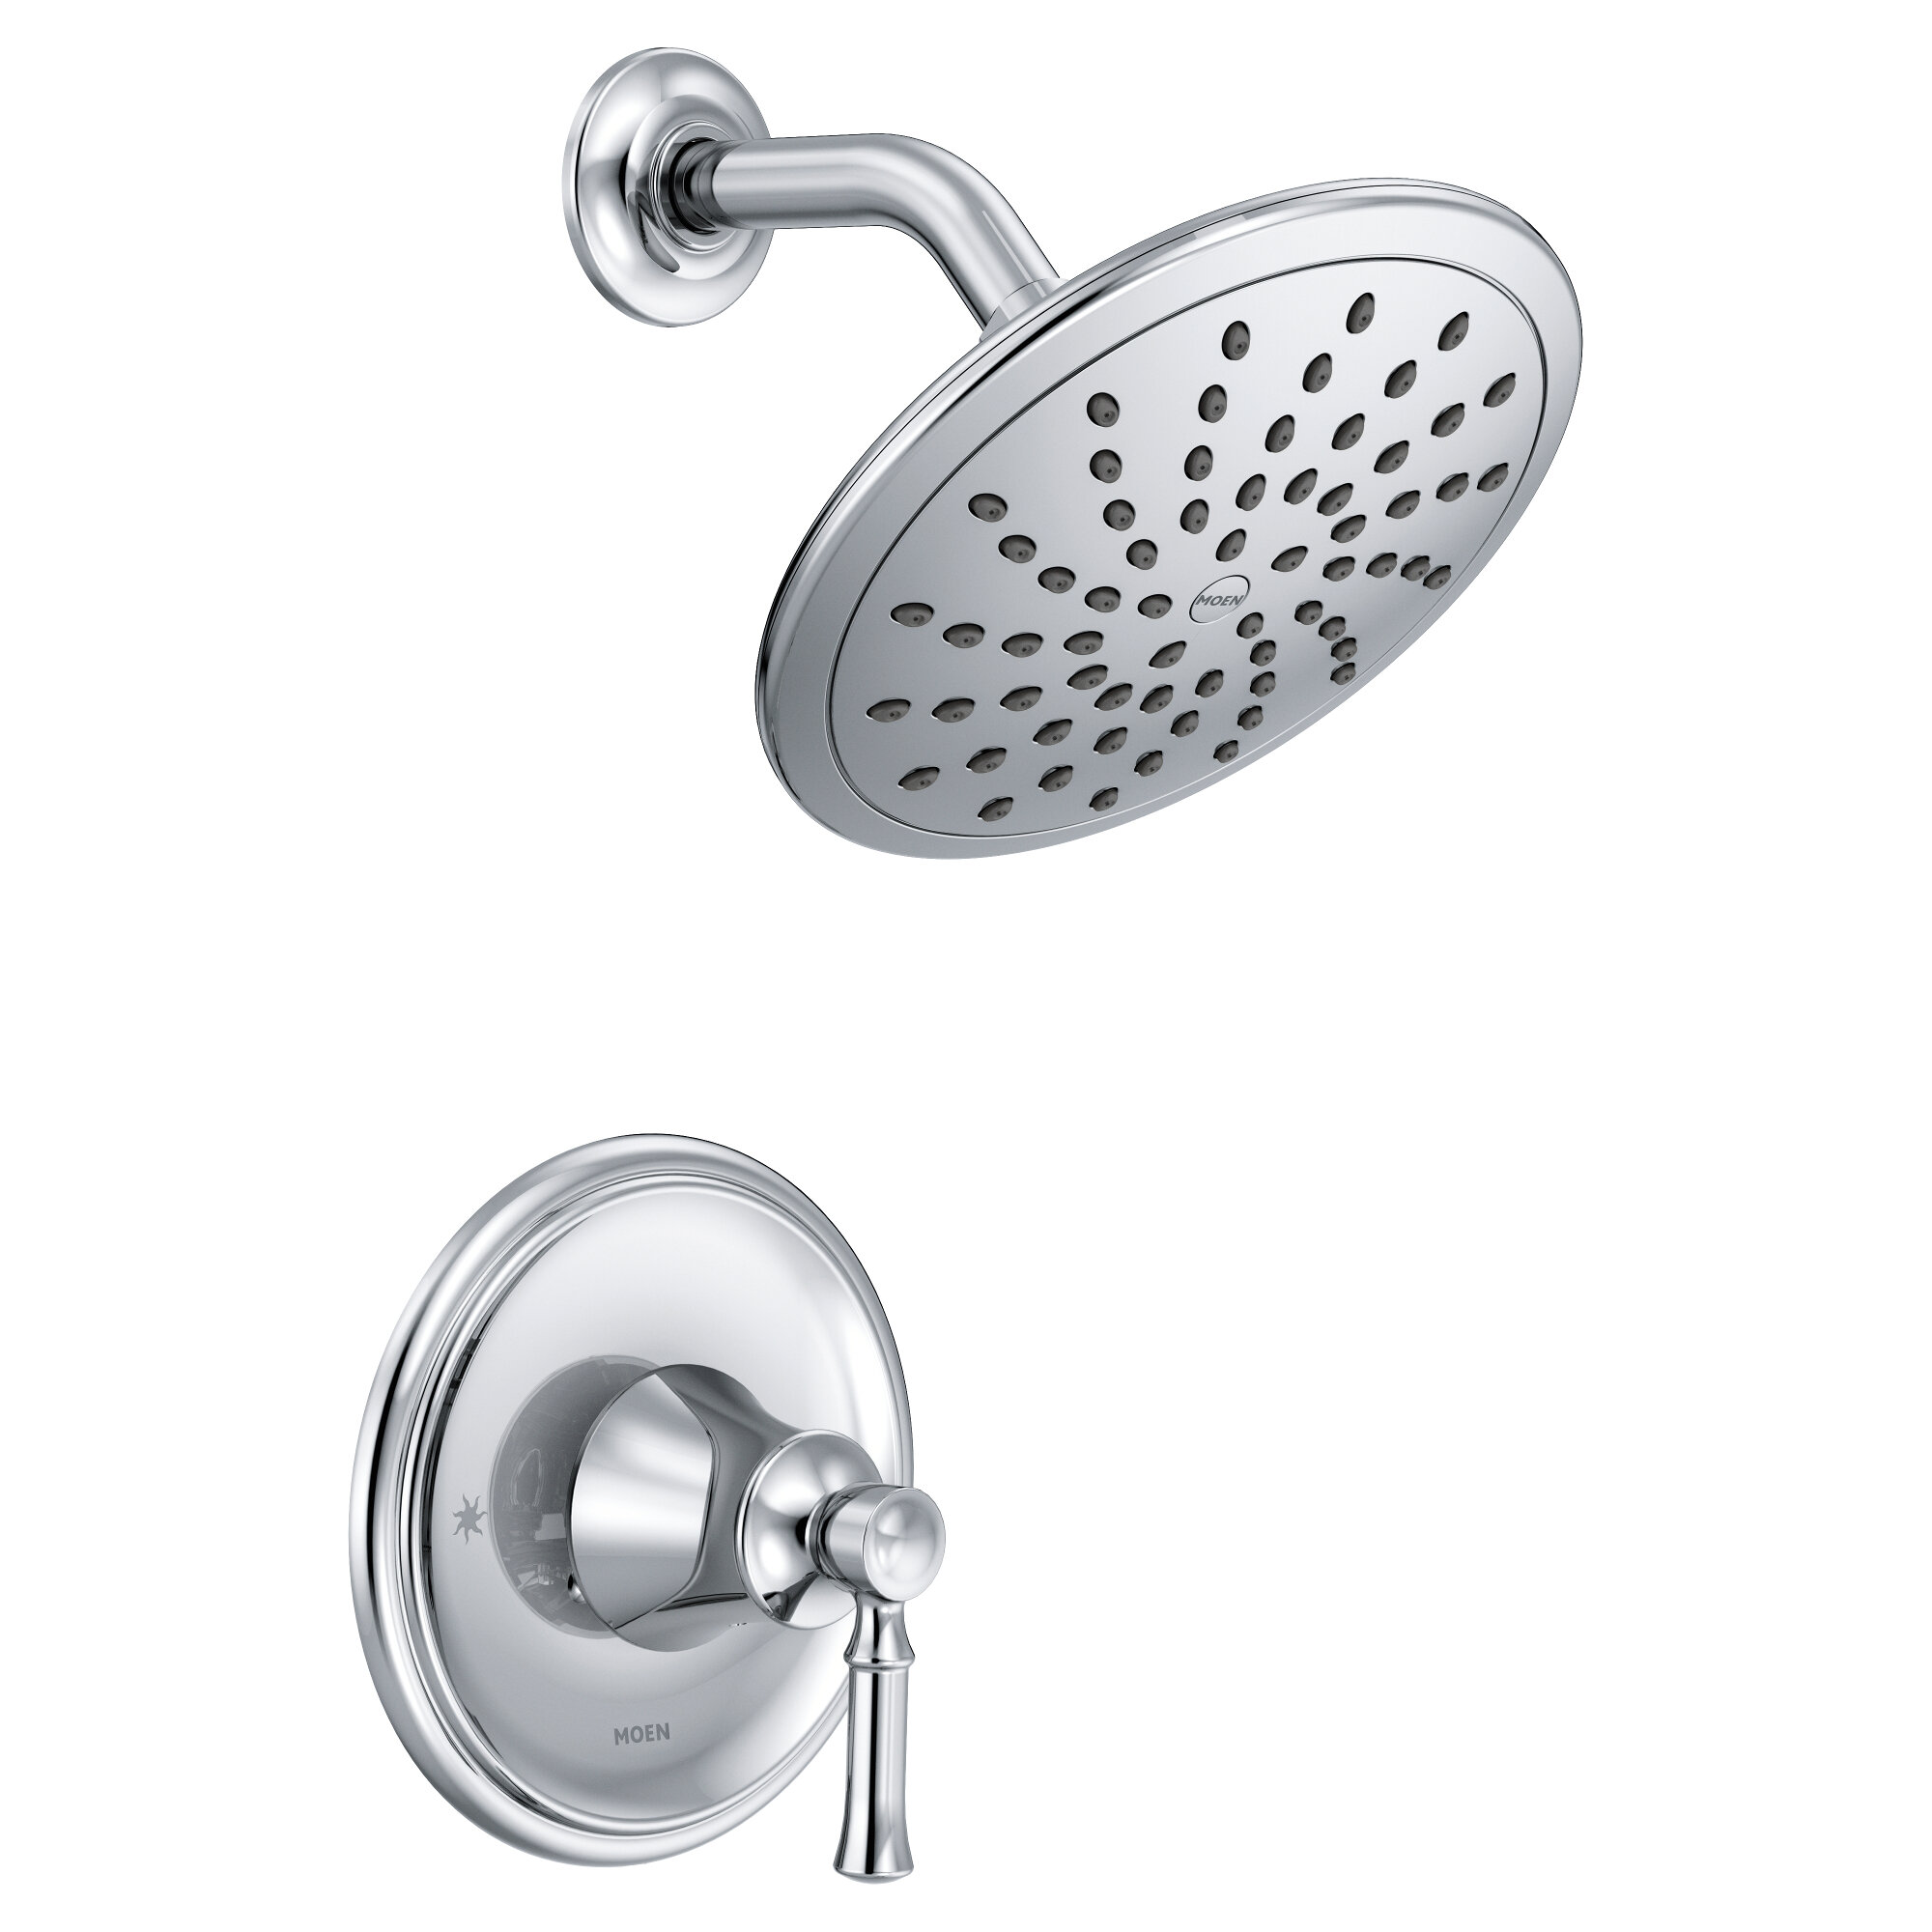 Moen Dartmoor Pressure Balance Shower Faucet with Lever Handle ...